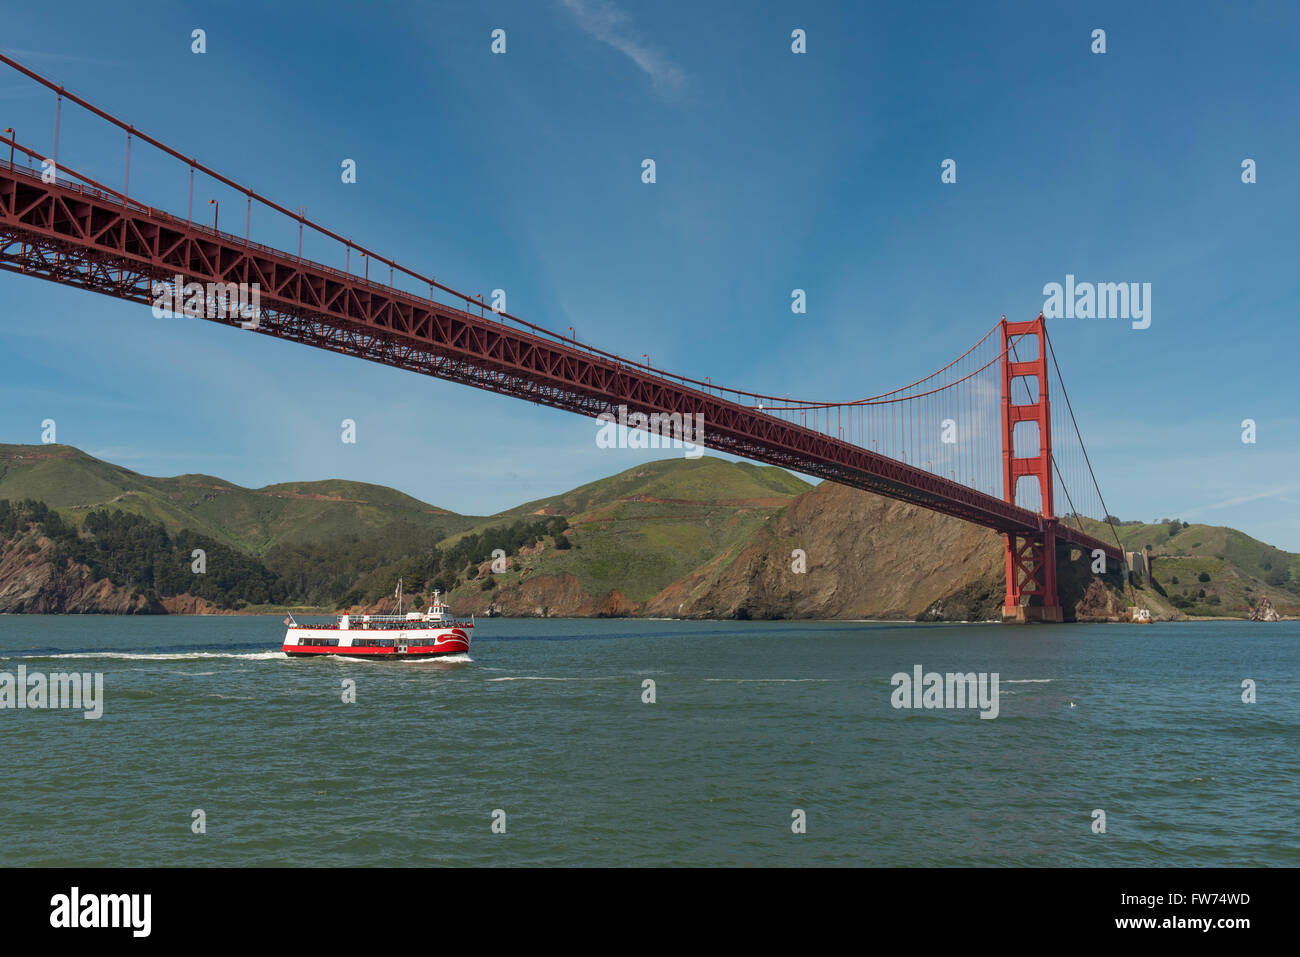 The Golden Gate Bridge with sightseeing boat passing underneath it, near San Francisco, California, USA - Stock Image